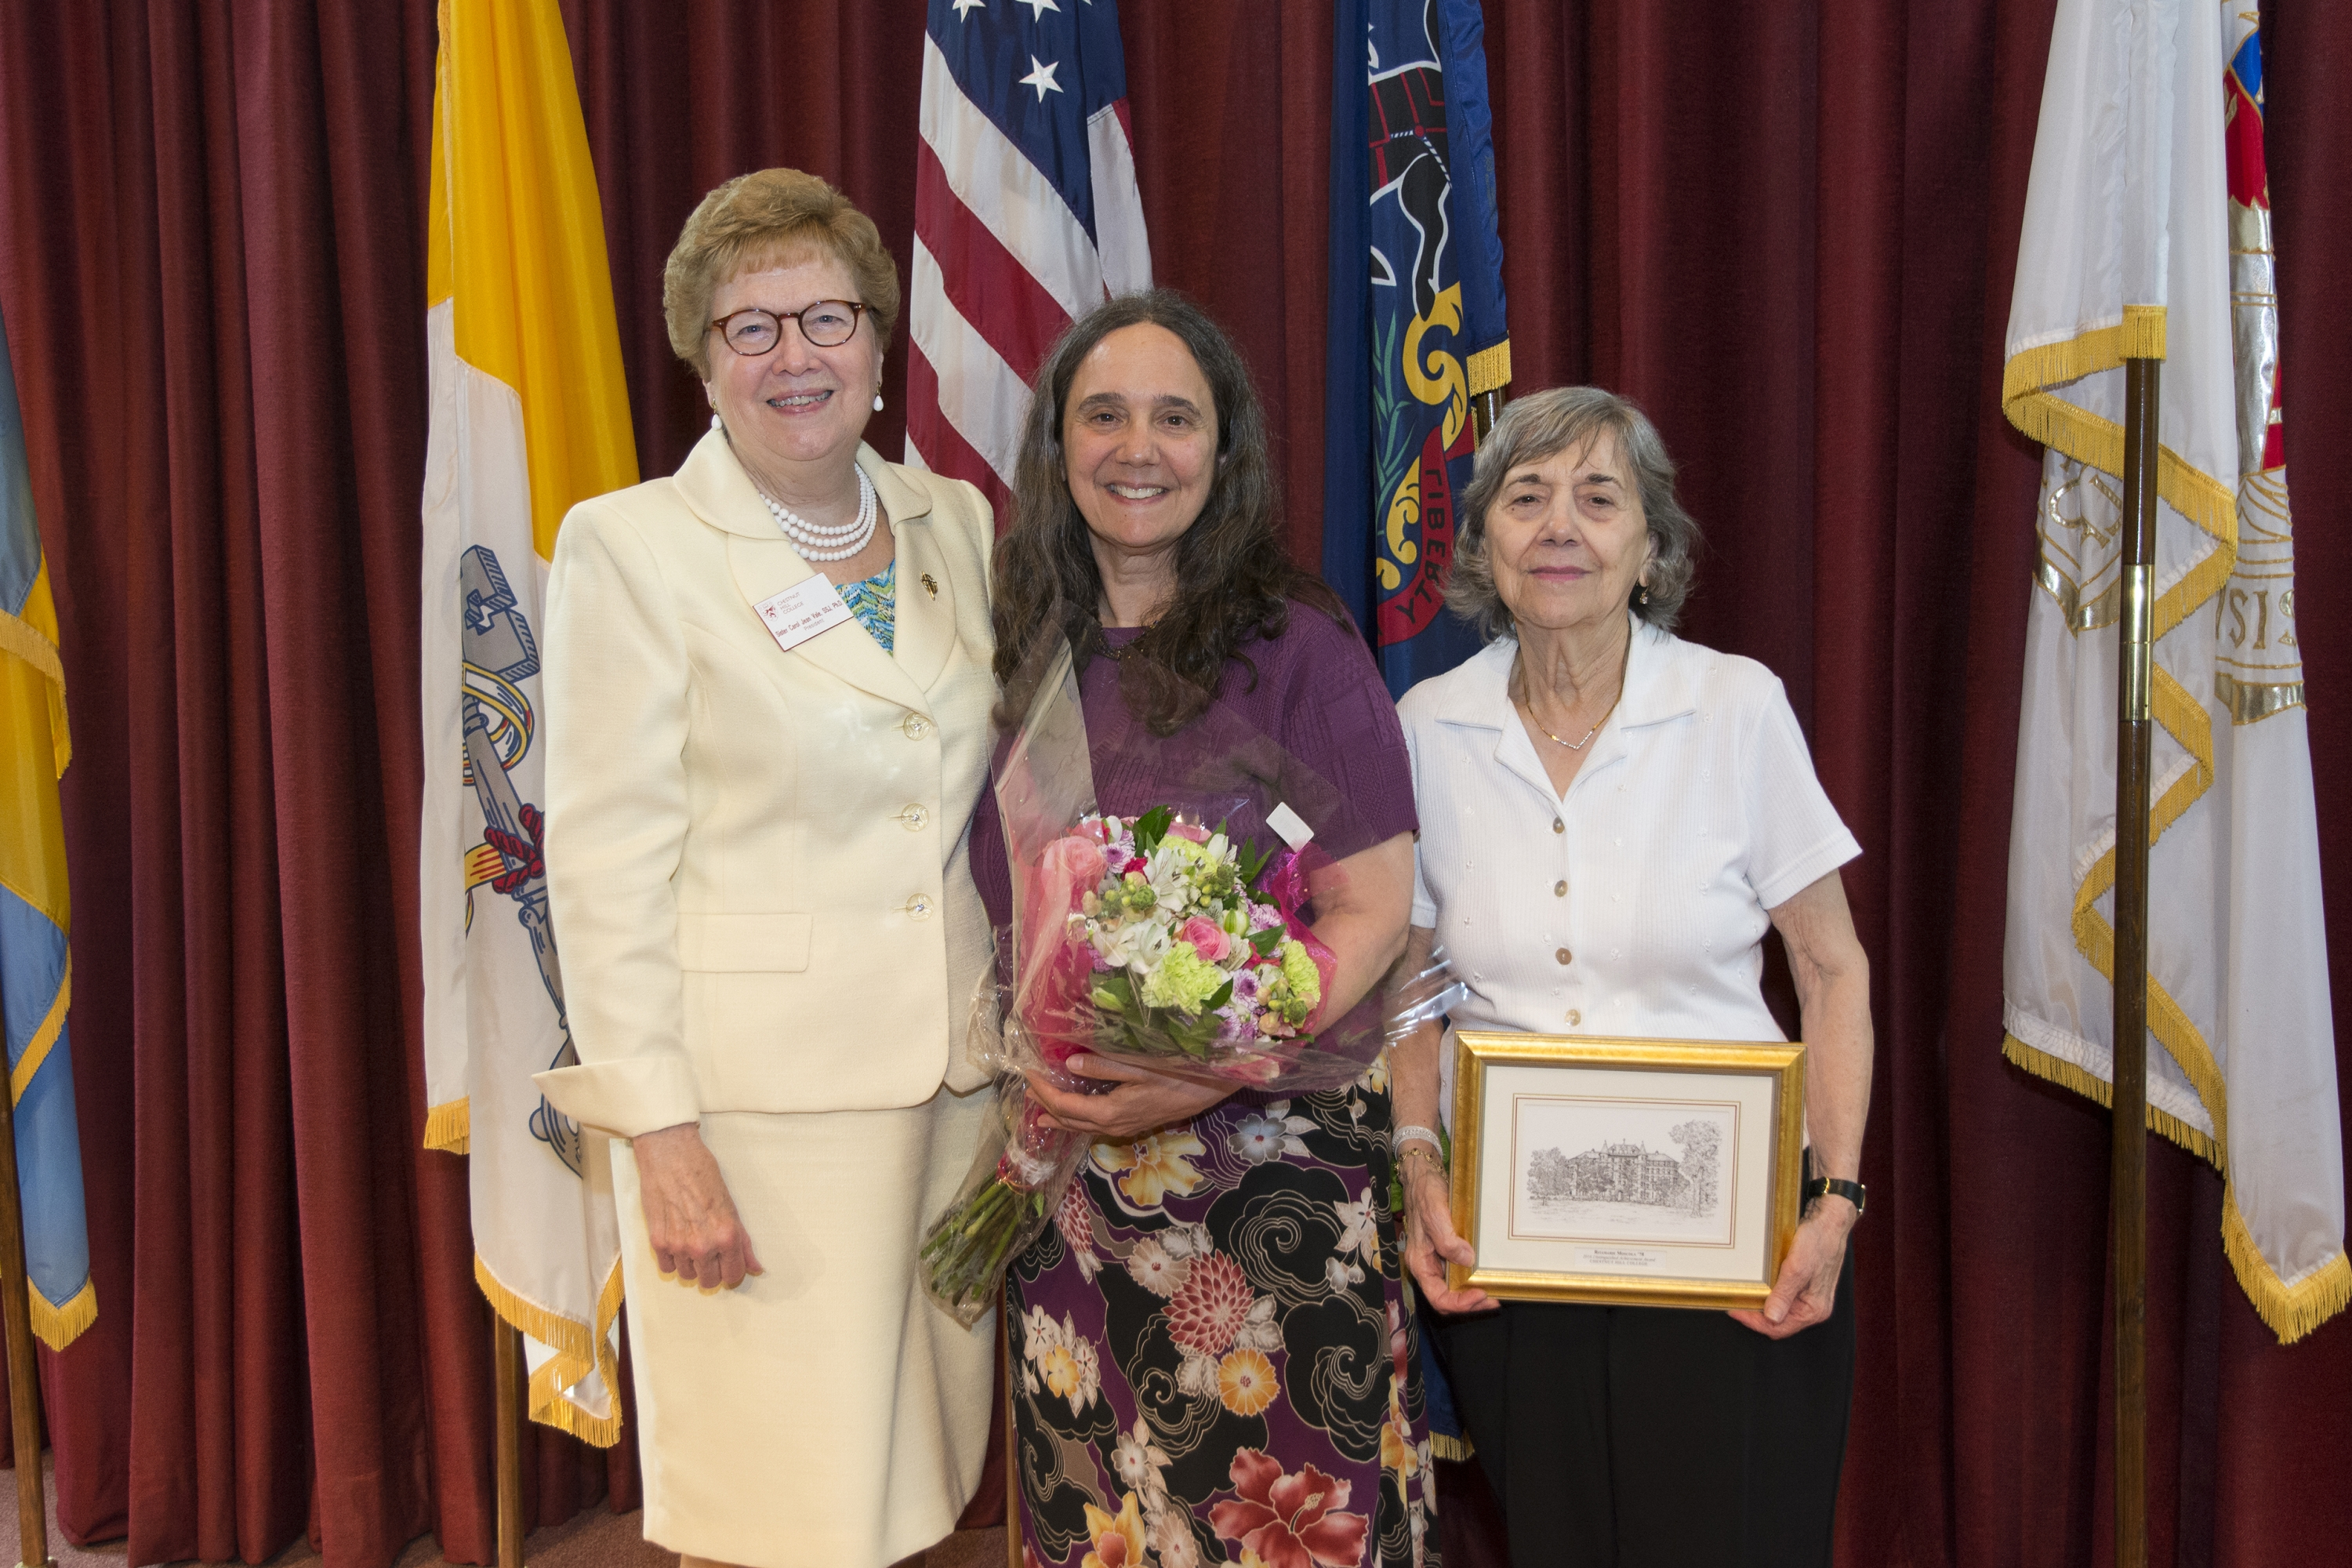 Ritamarie Moscola M.D., M.P.H. '78, center, and her mother pose with Sister Carol after the ceremony.